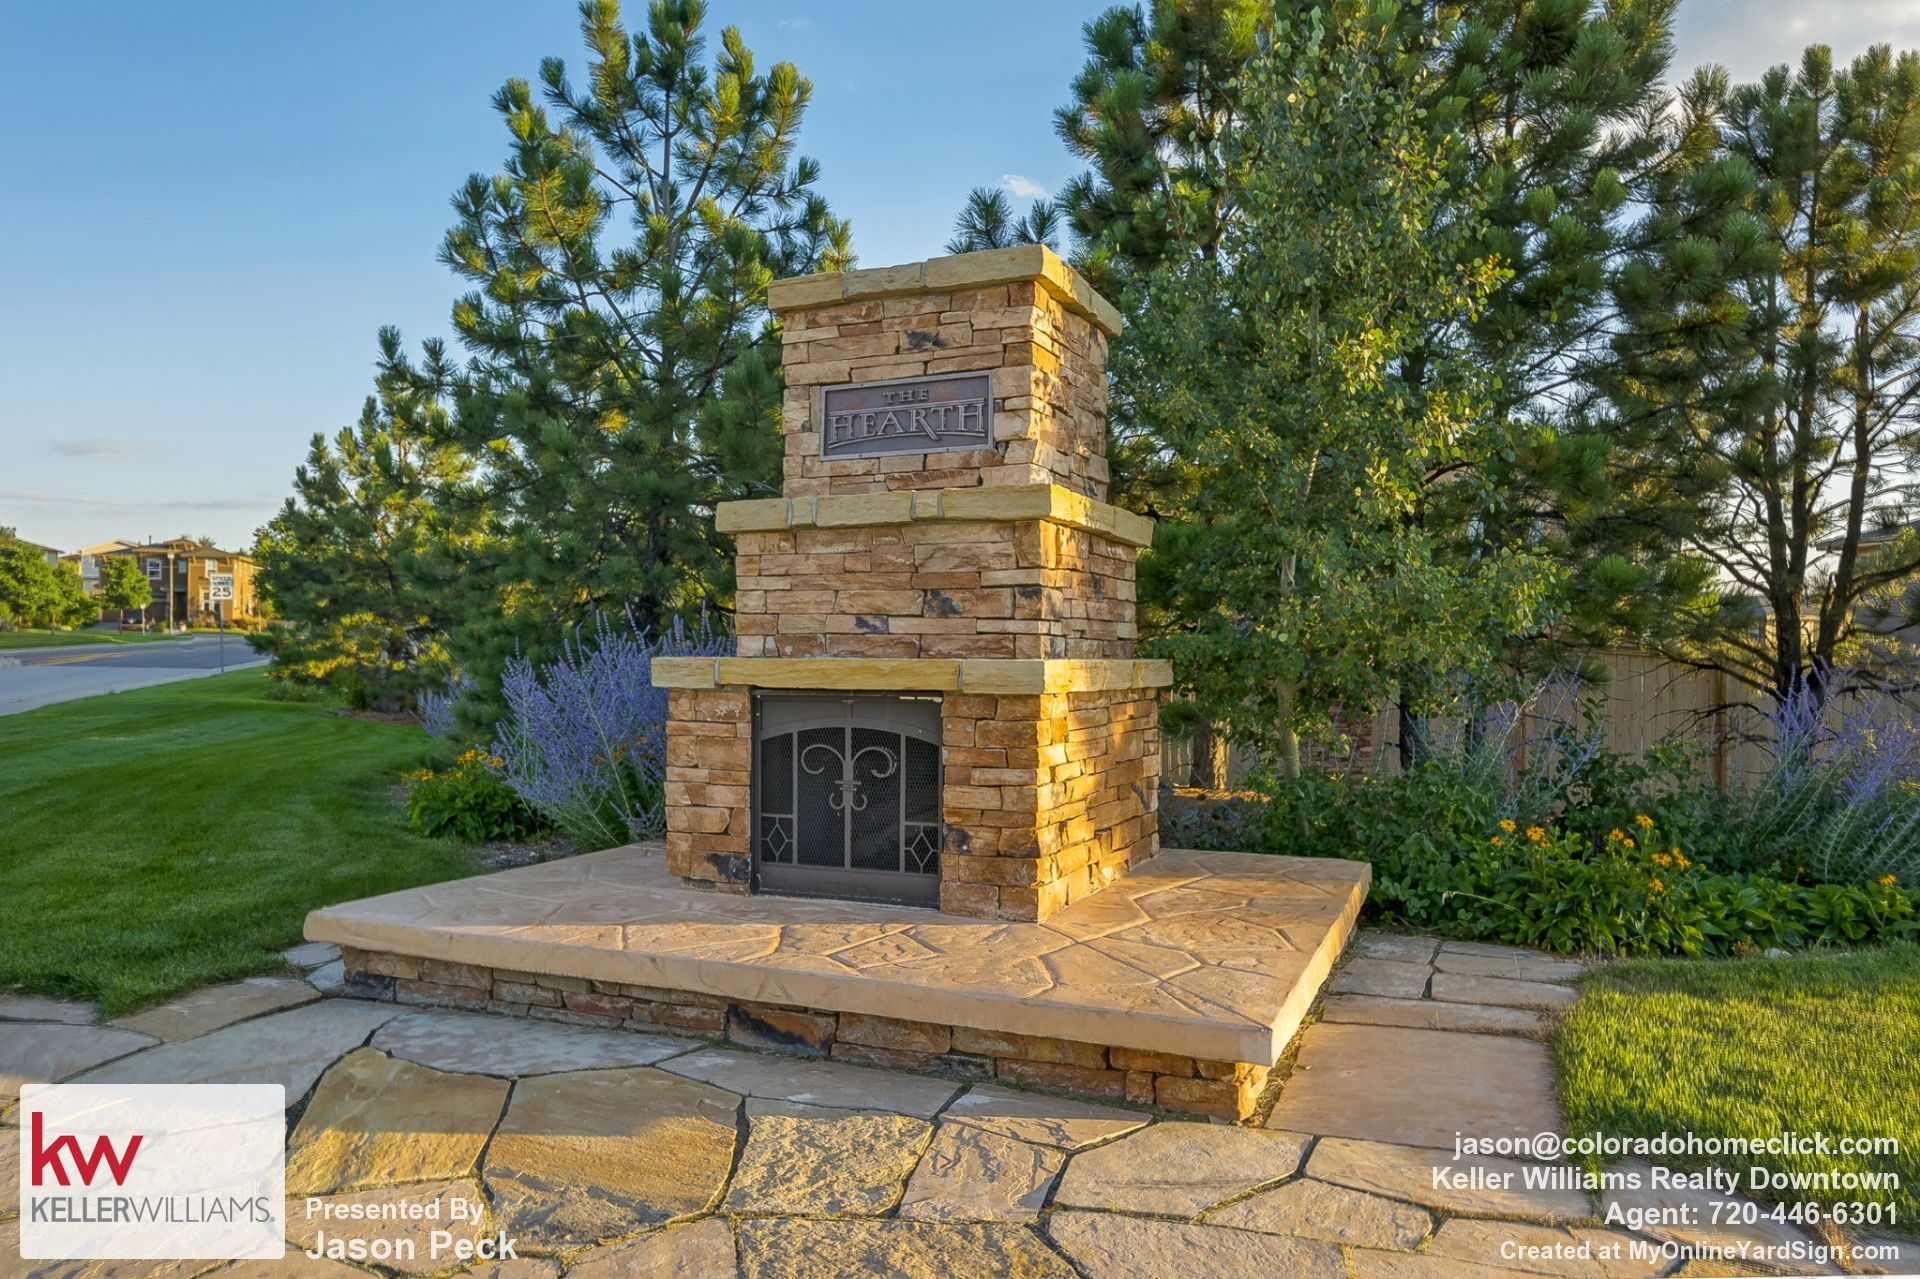 The Hearth in Highlands Ranch